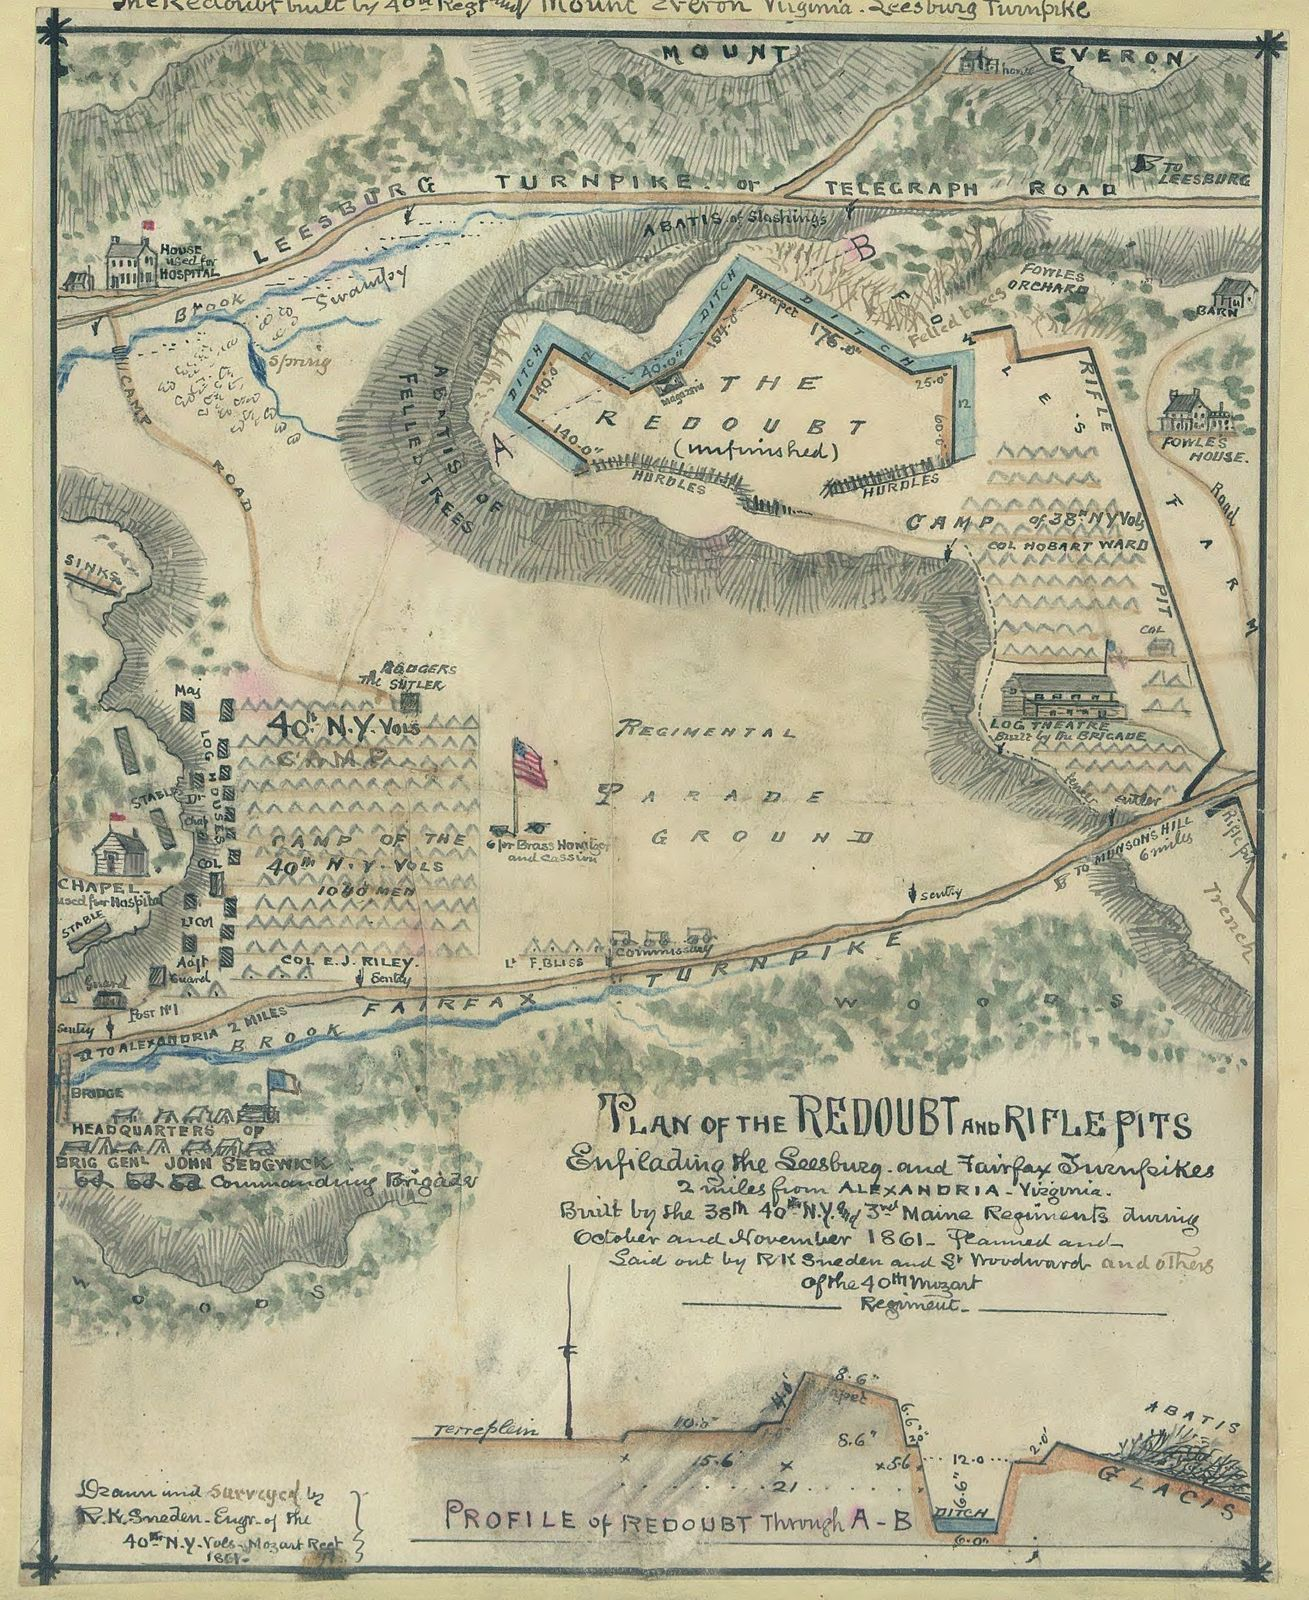 Plan of the redoubt and rifle pits ensilading [sic] the Leesburg and Fairfax turnpikes 2 miles from Alexandria, Virginia. Built by the 38th, 40th N.Y. and 3rd Maine regiments during October and November 1861.